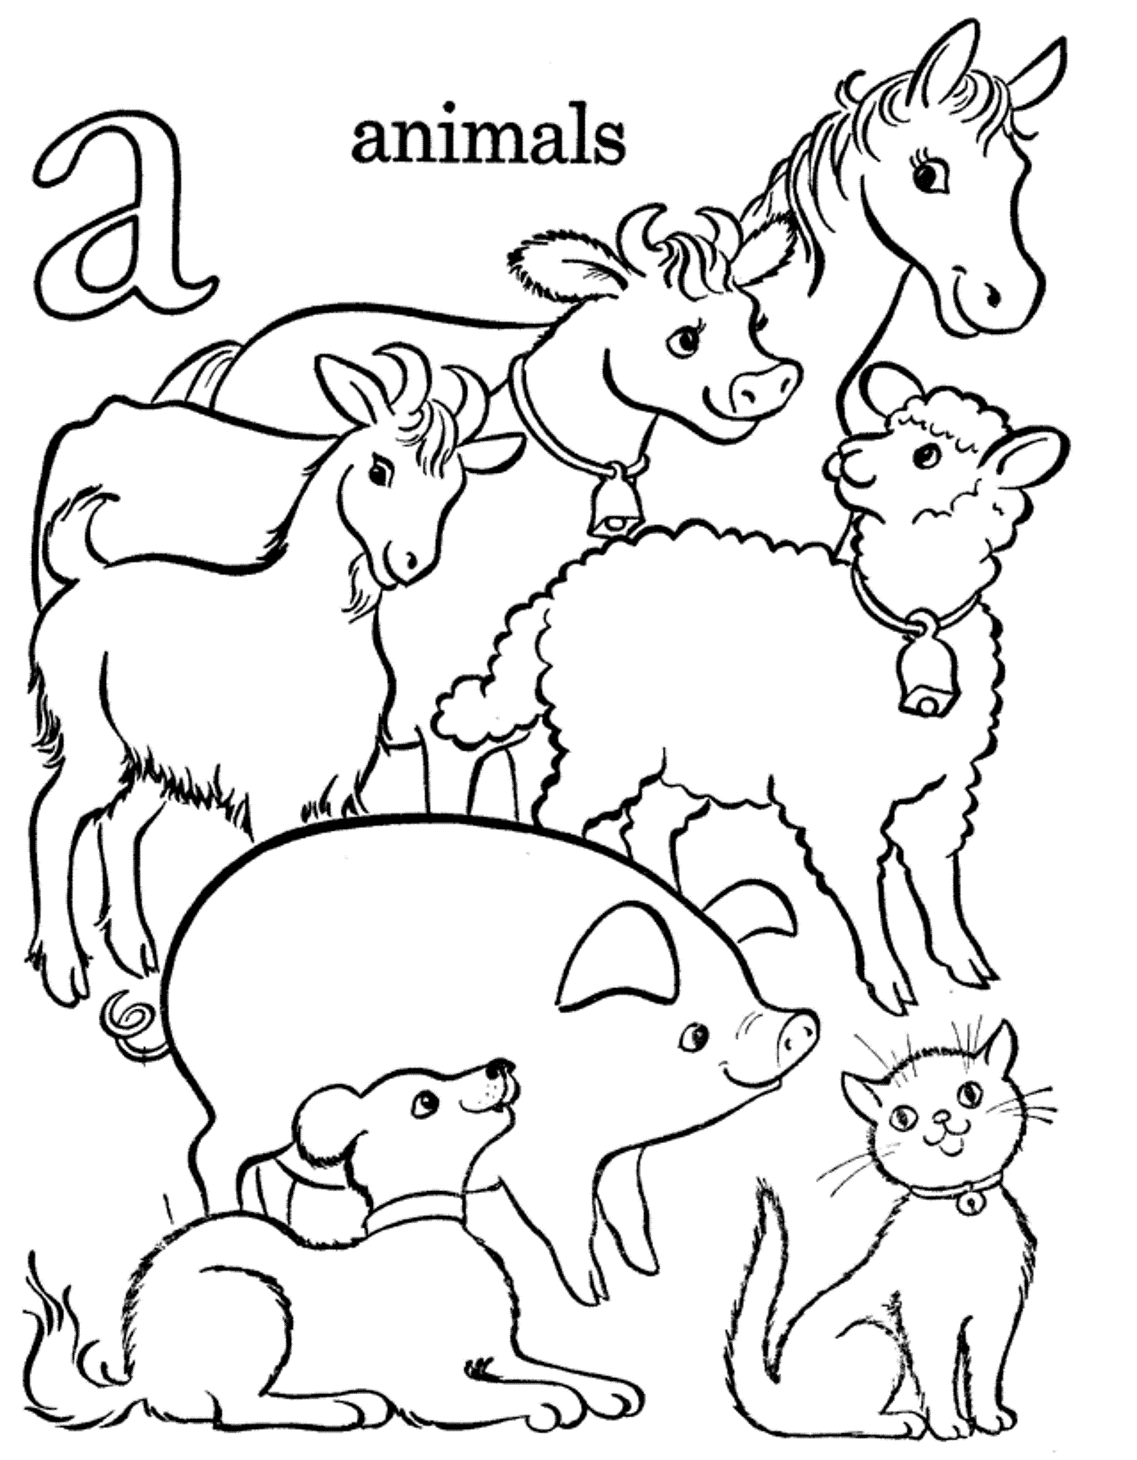 Coloring book pages farm animals - Printable Farm Animals Coloring Pages Farm Animal Color Pages Part